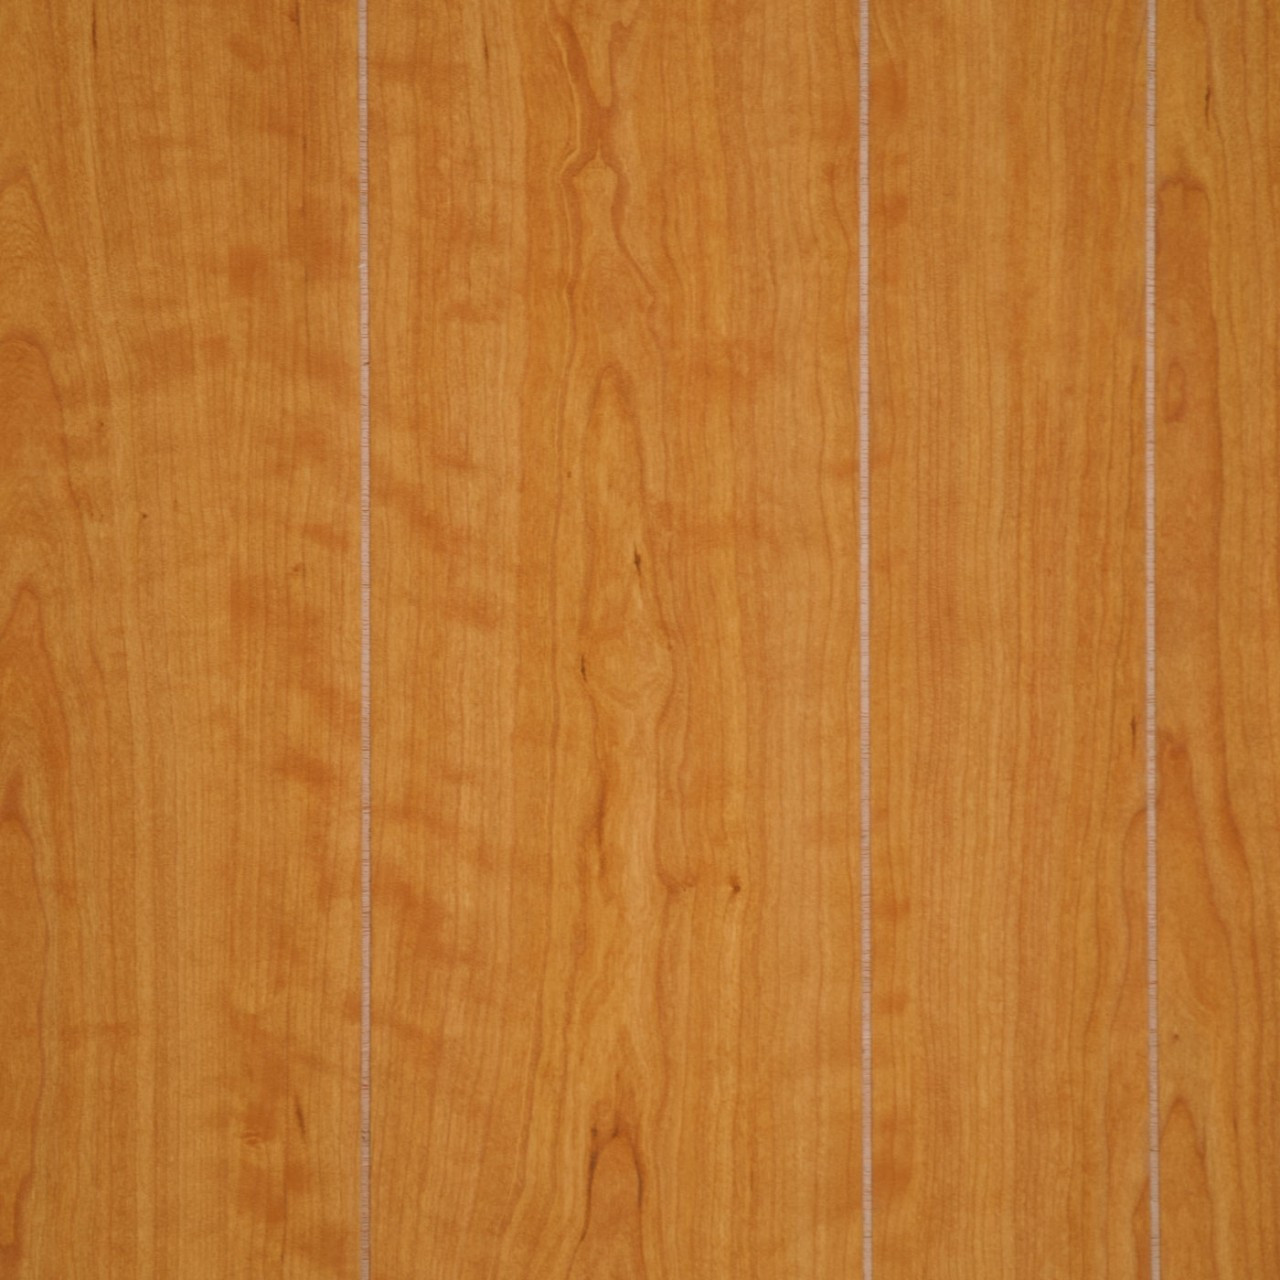 Wood Paneling Lt Autumn Cherry Random Plank Panels